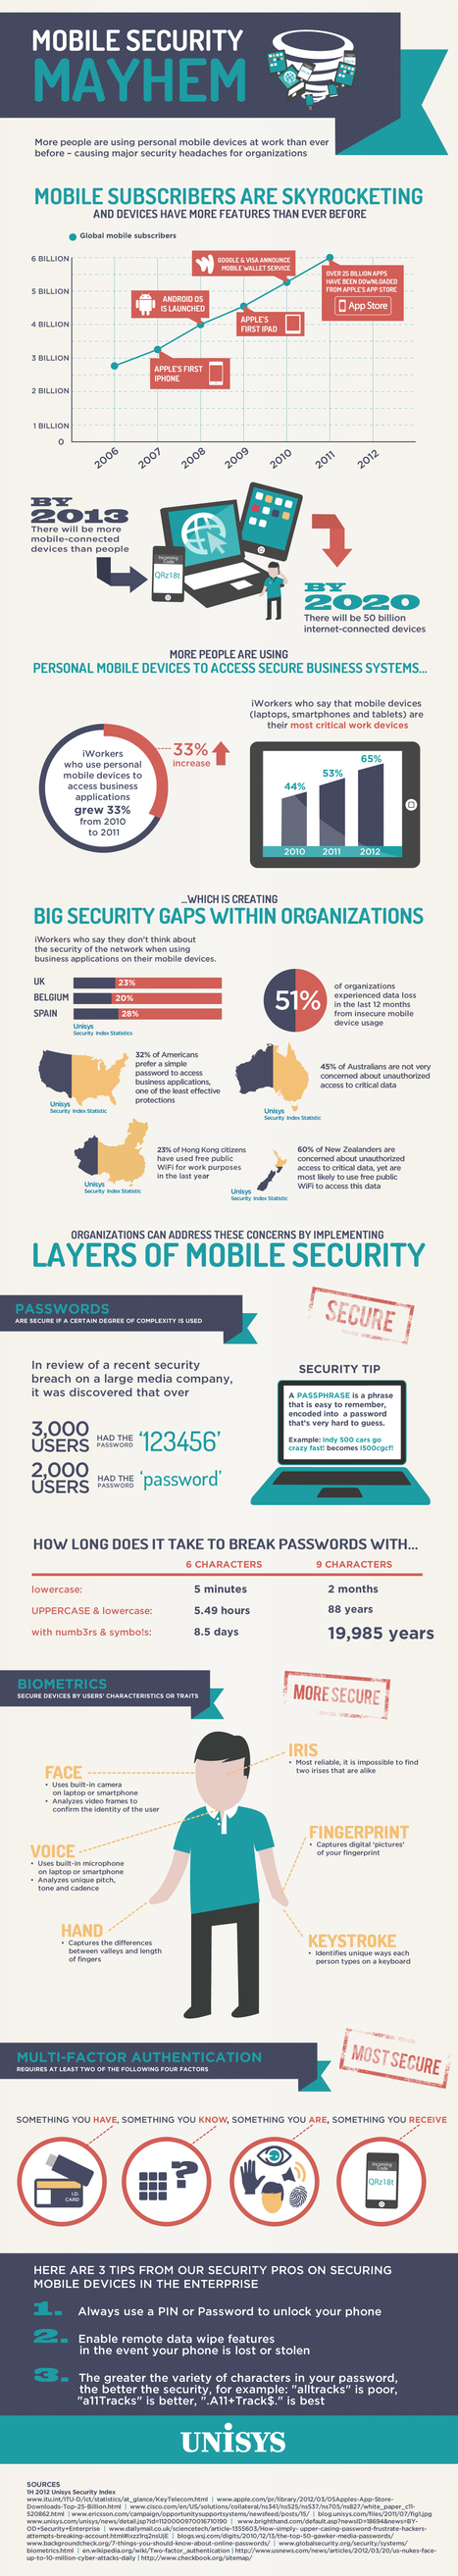 What Apple and Google are not Telling you About Mobile Device Security (infographic) - Forbes | #TRIC para los de LETRAS | Scoop.it